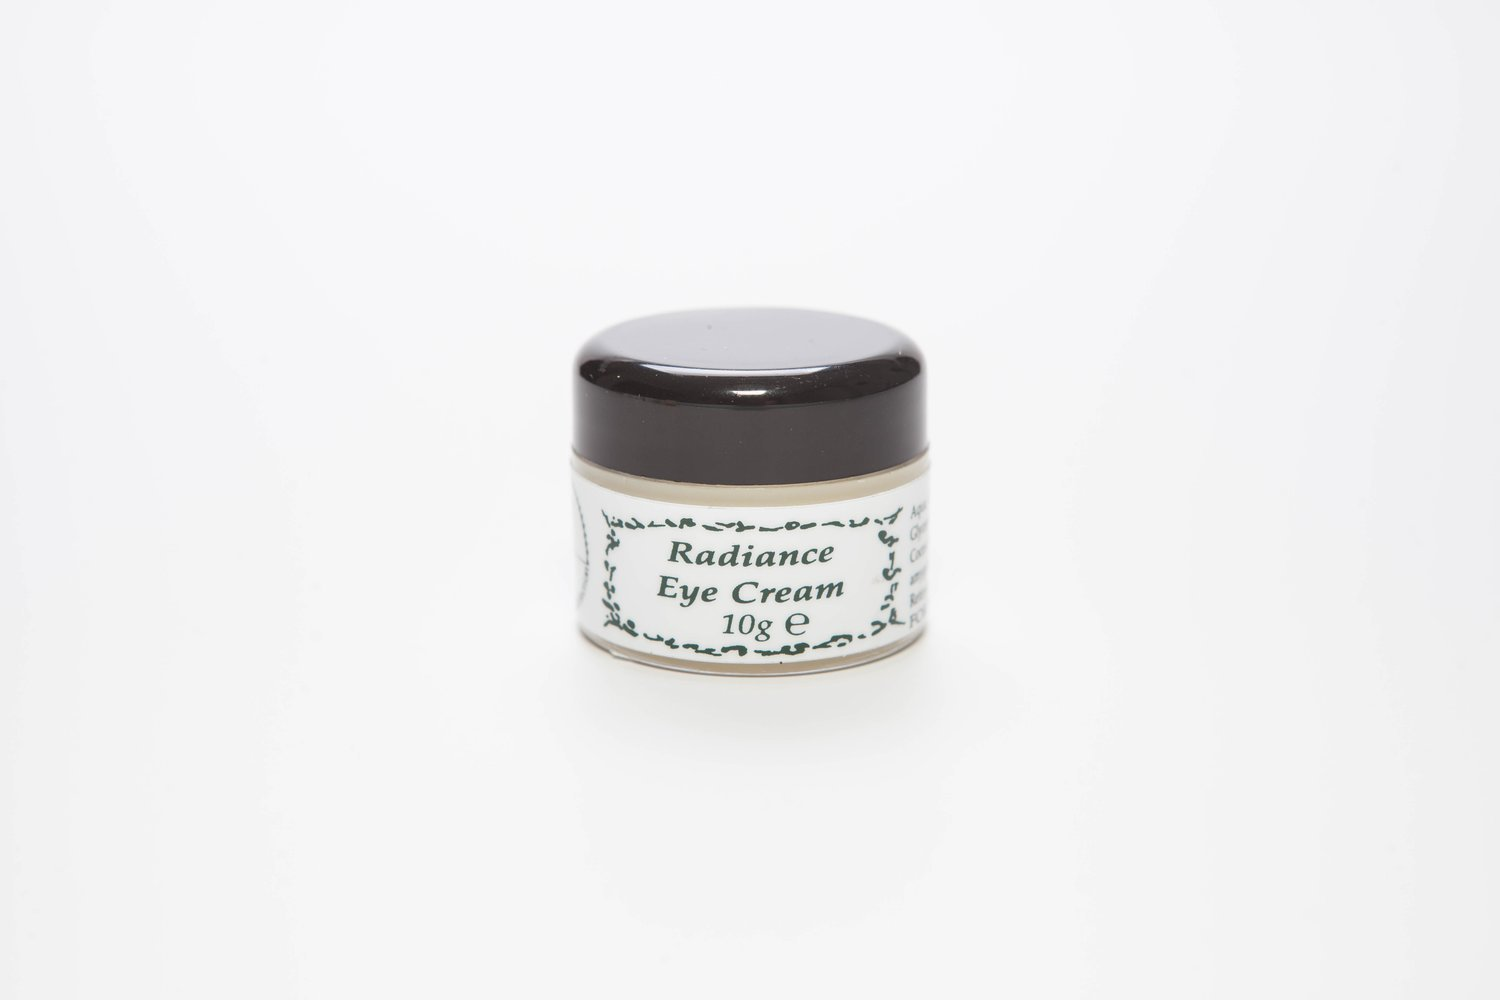 Radiance Eye Cream with calendula and vitamin E 10g